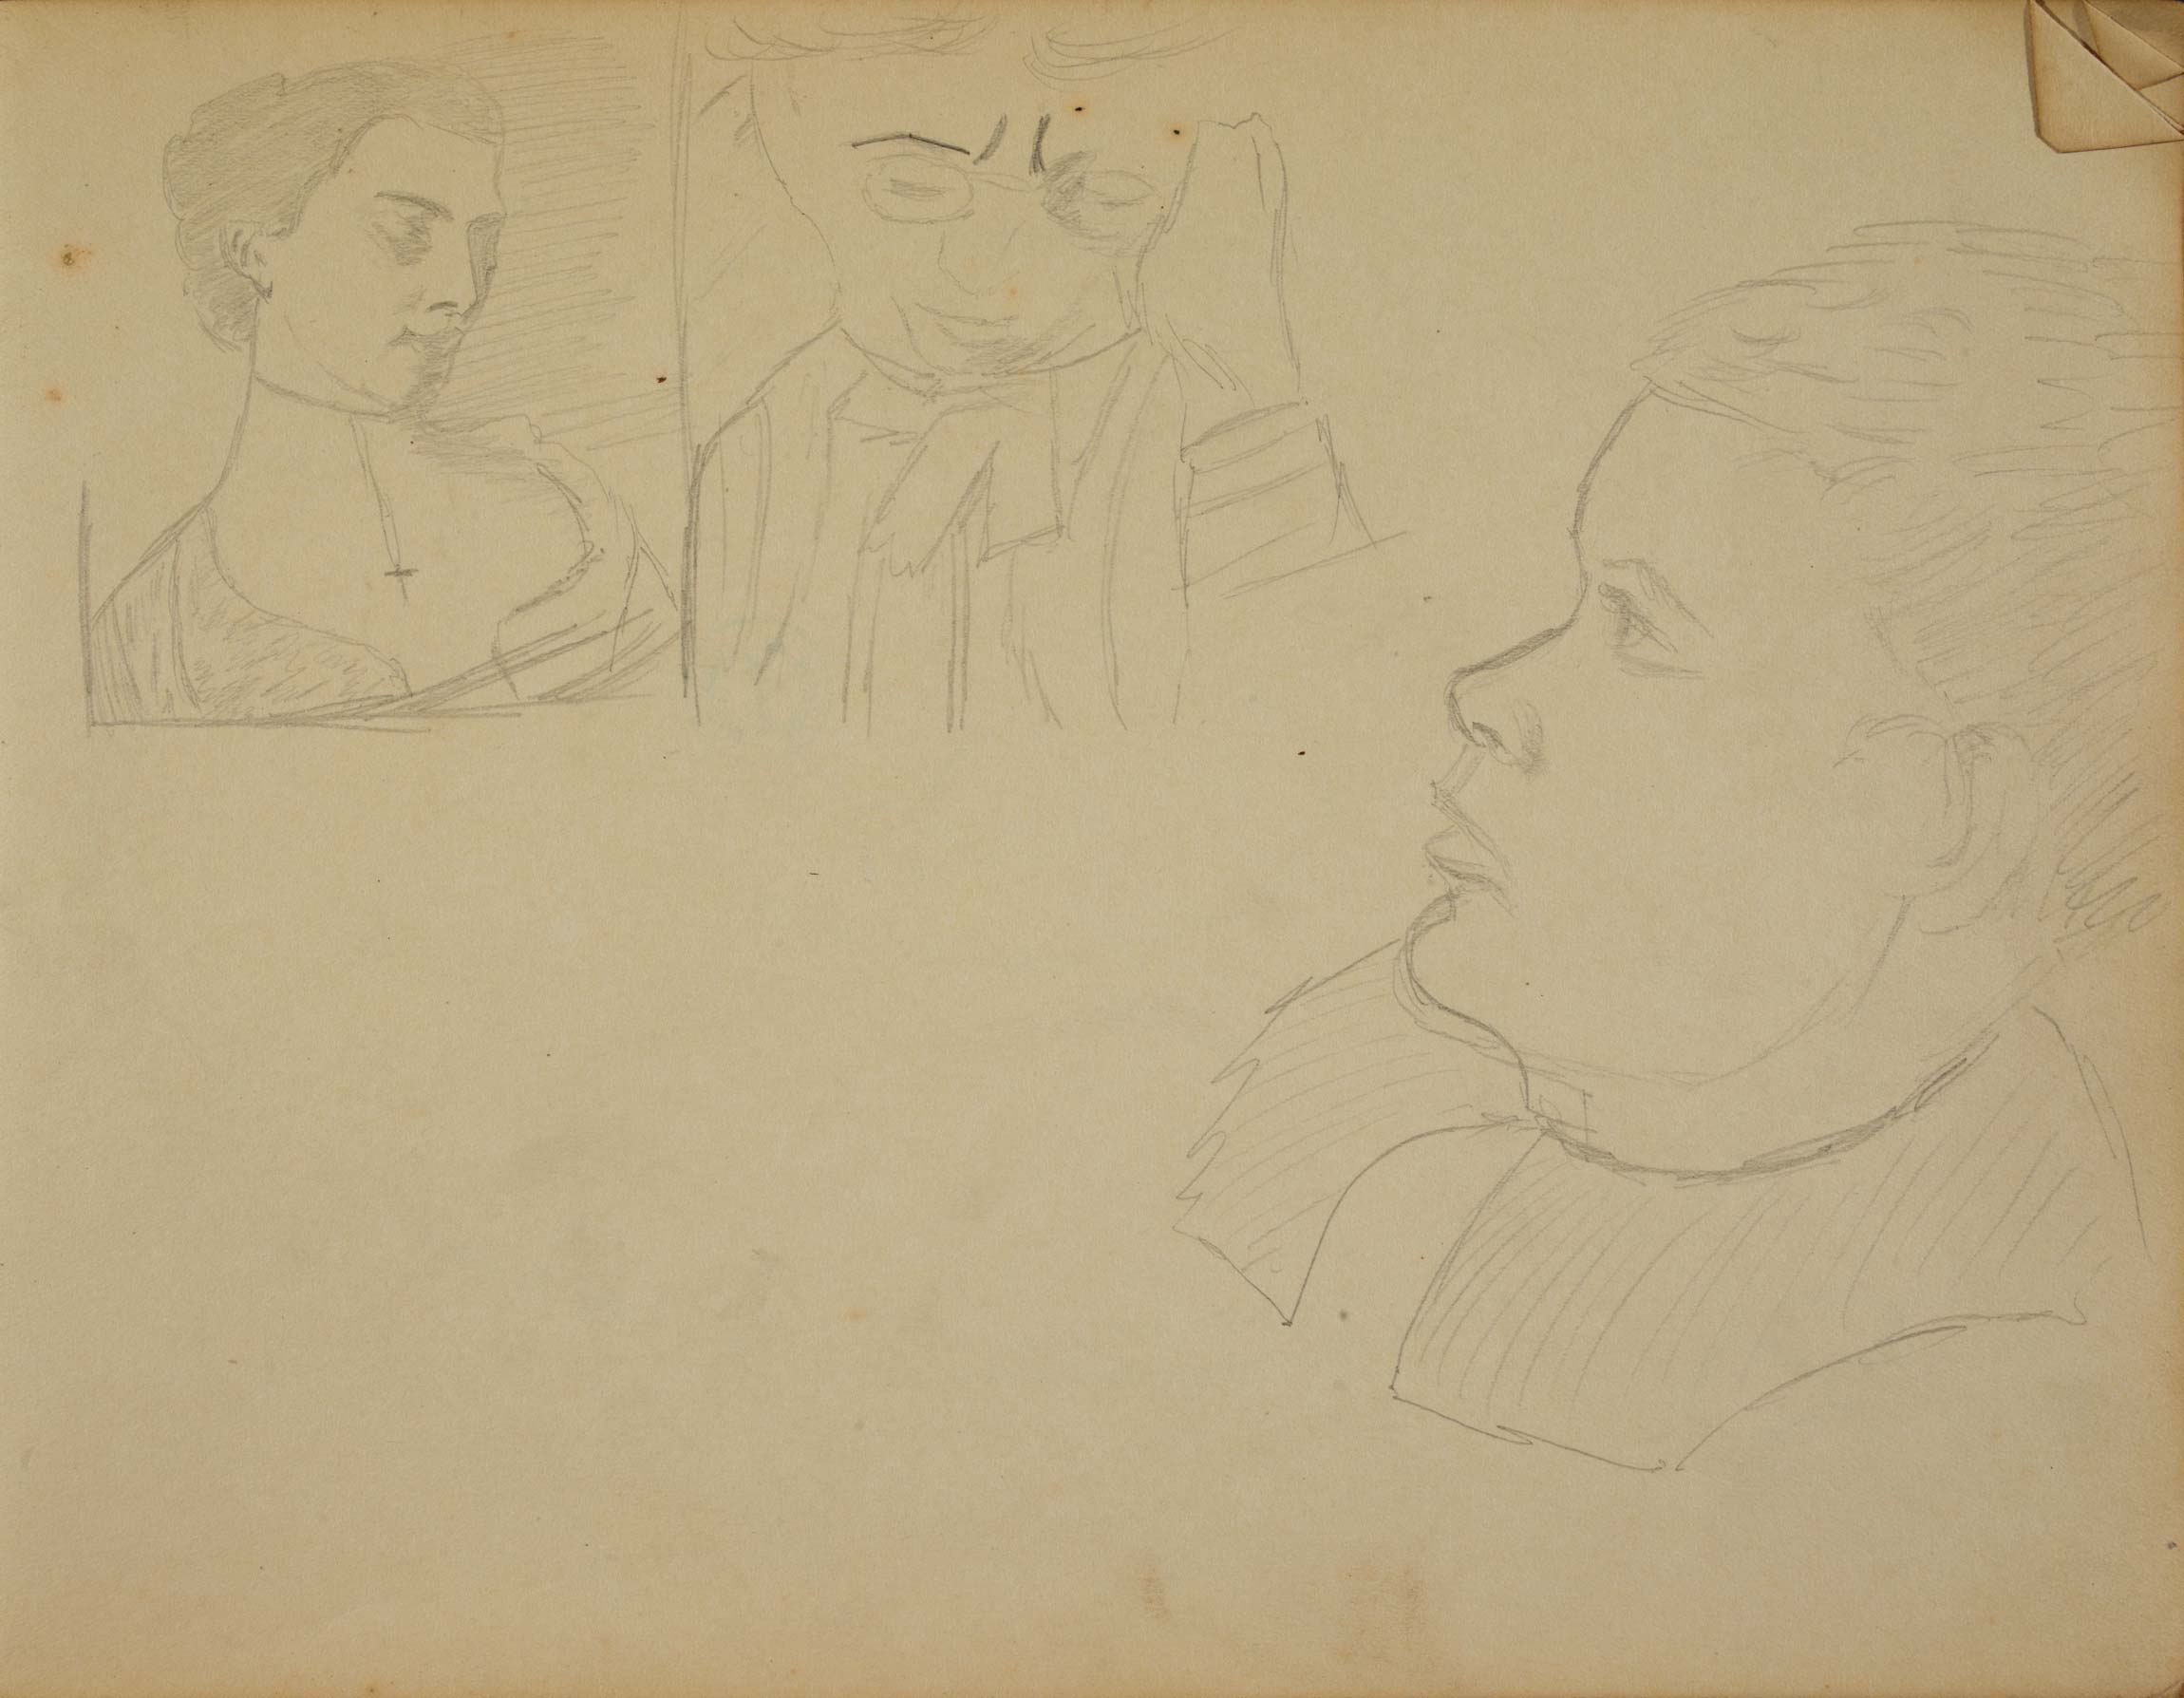 1916-ceanntpapers-sketch15